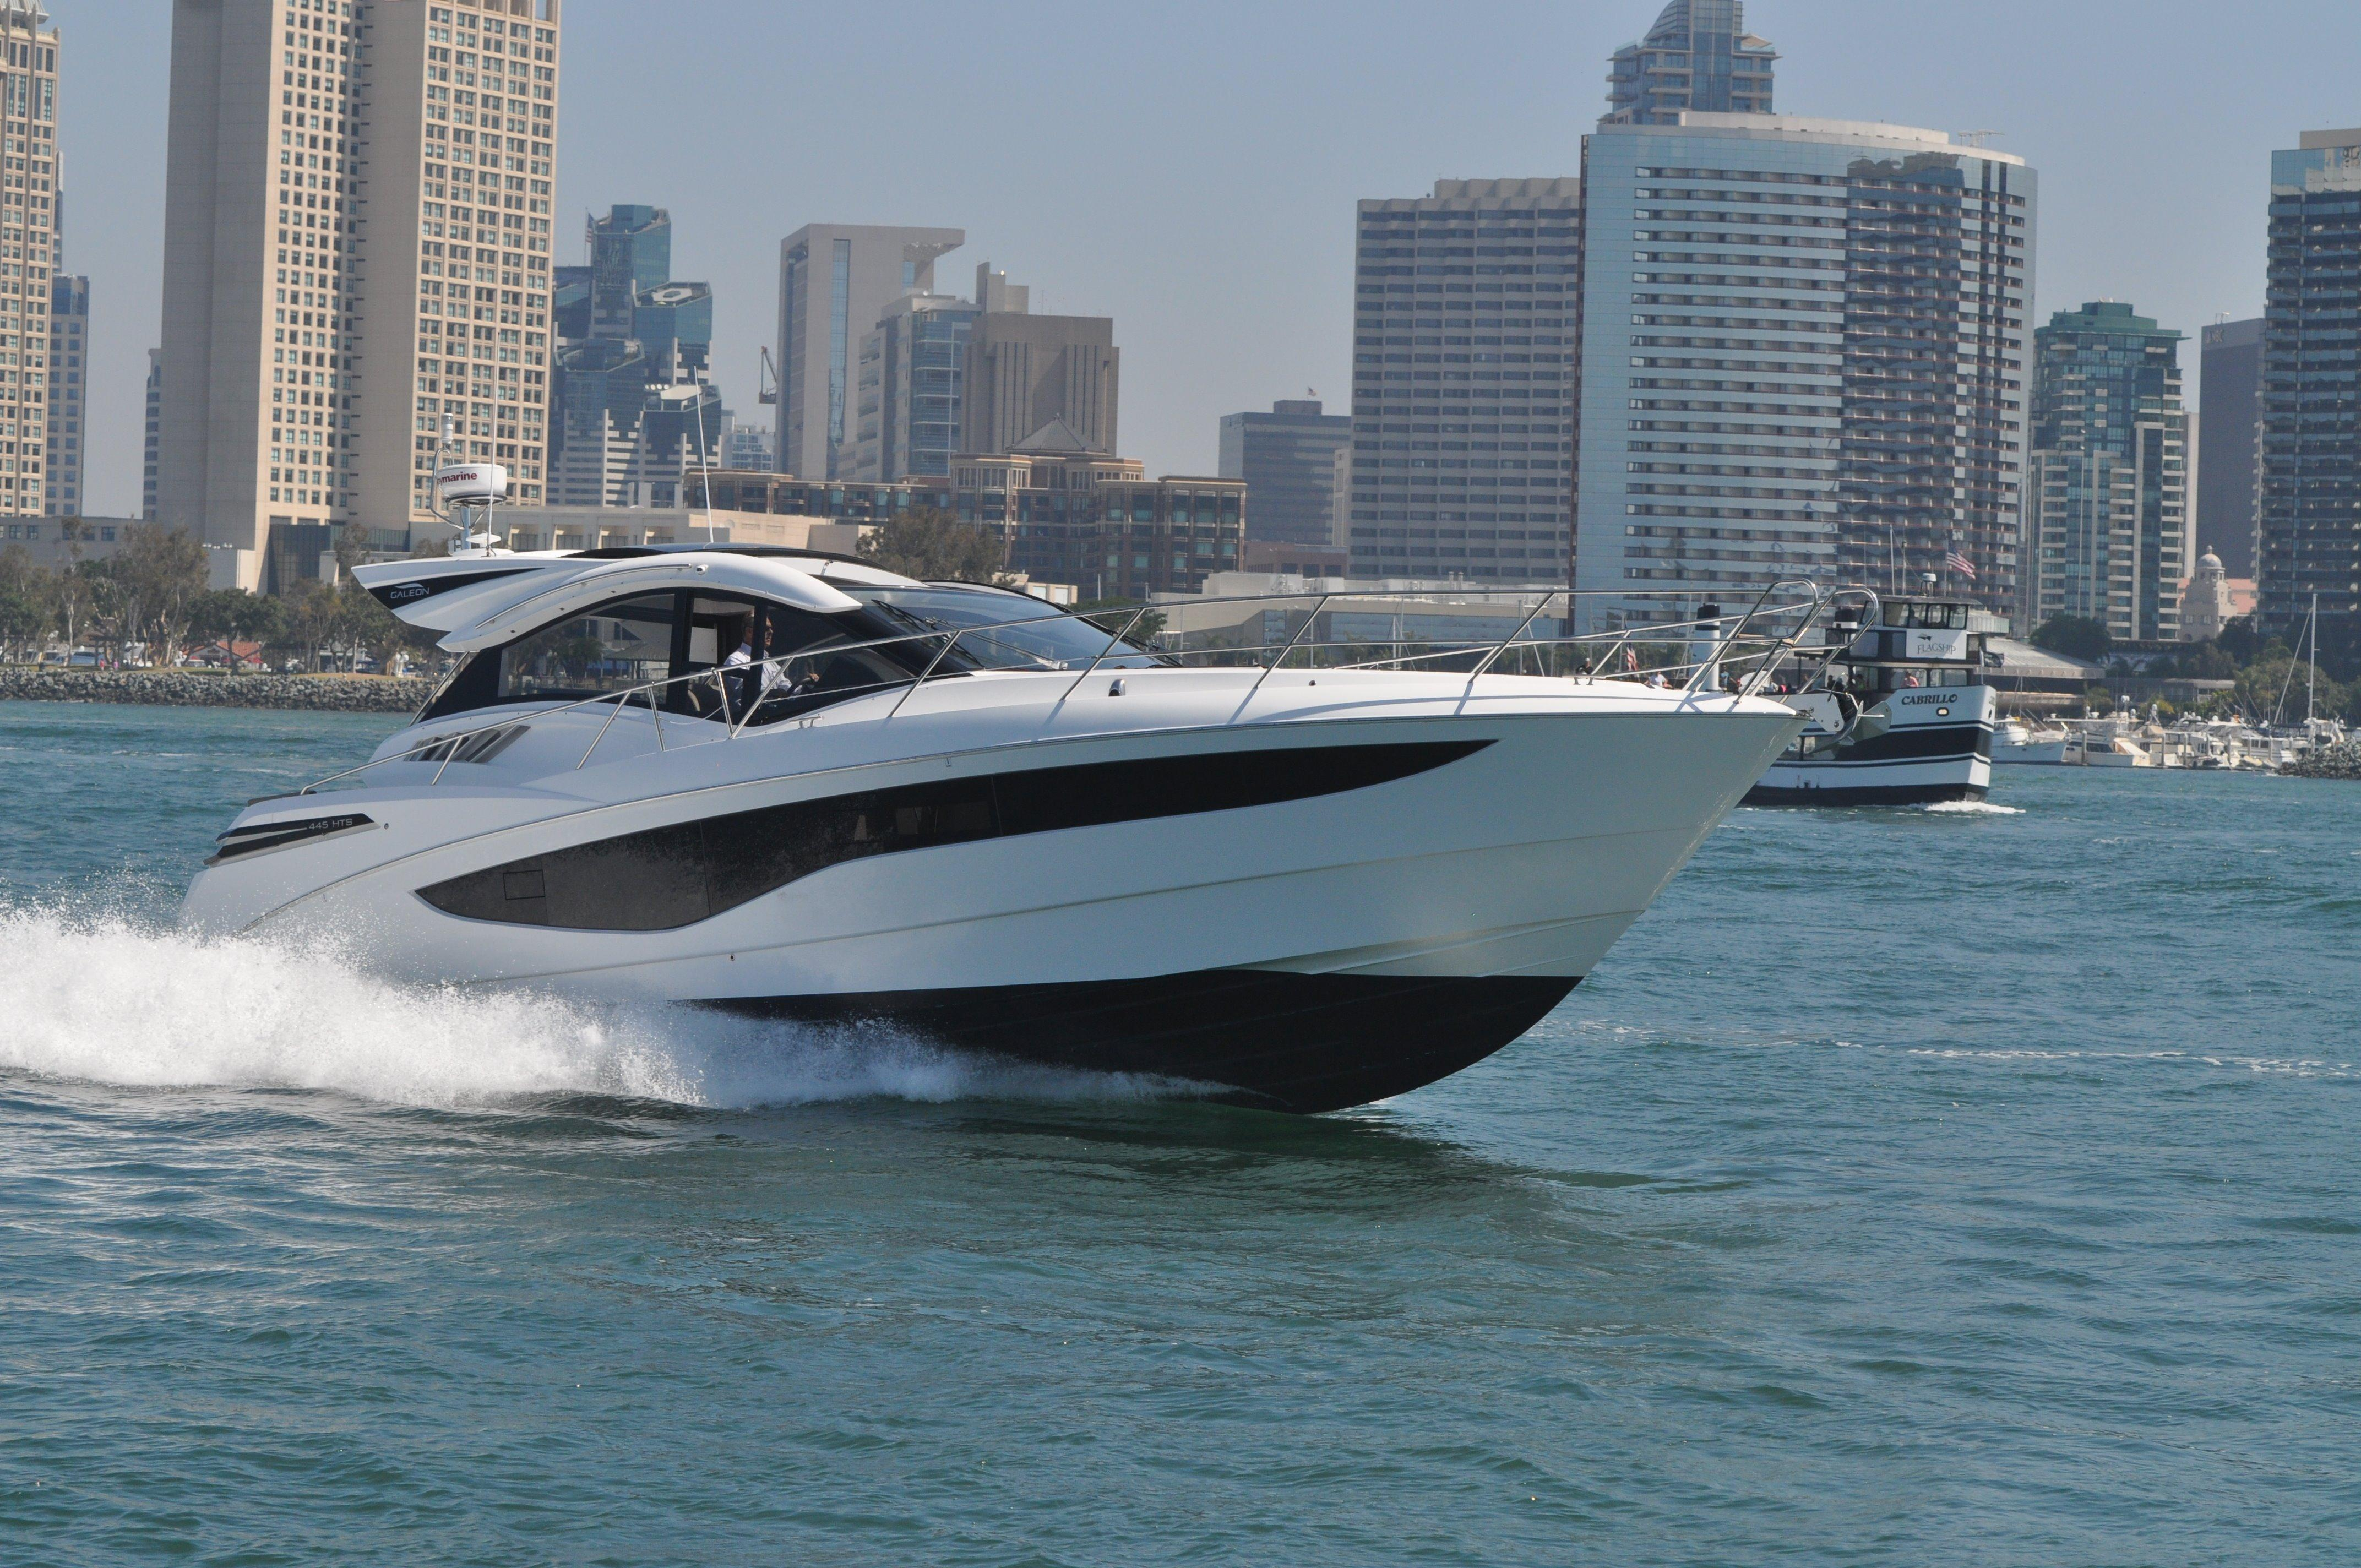 Lake Ozark (MO) United States  city pictures gallery : 2016 Galeon 445 HTS Power Boat For Sale www.yachtworld.com